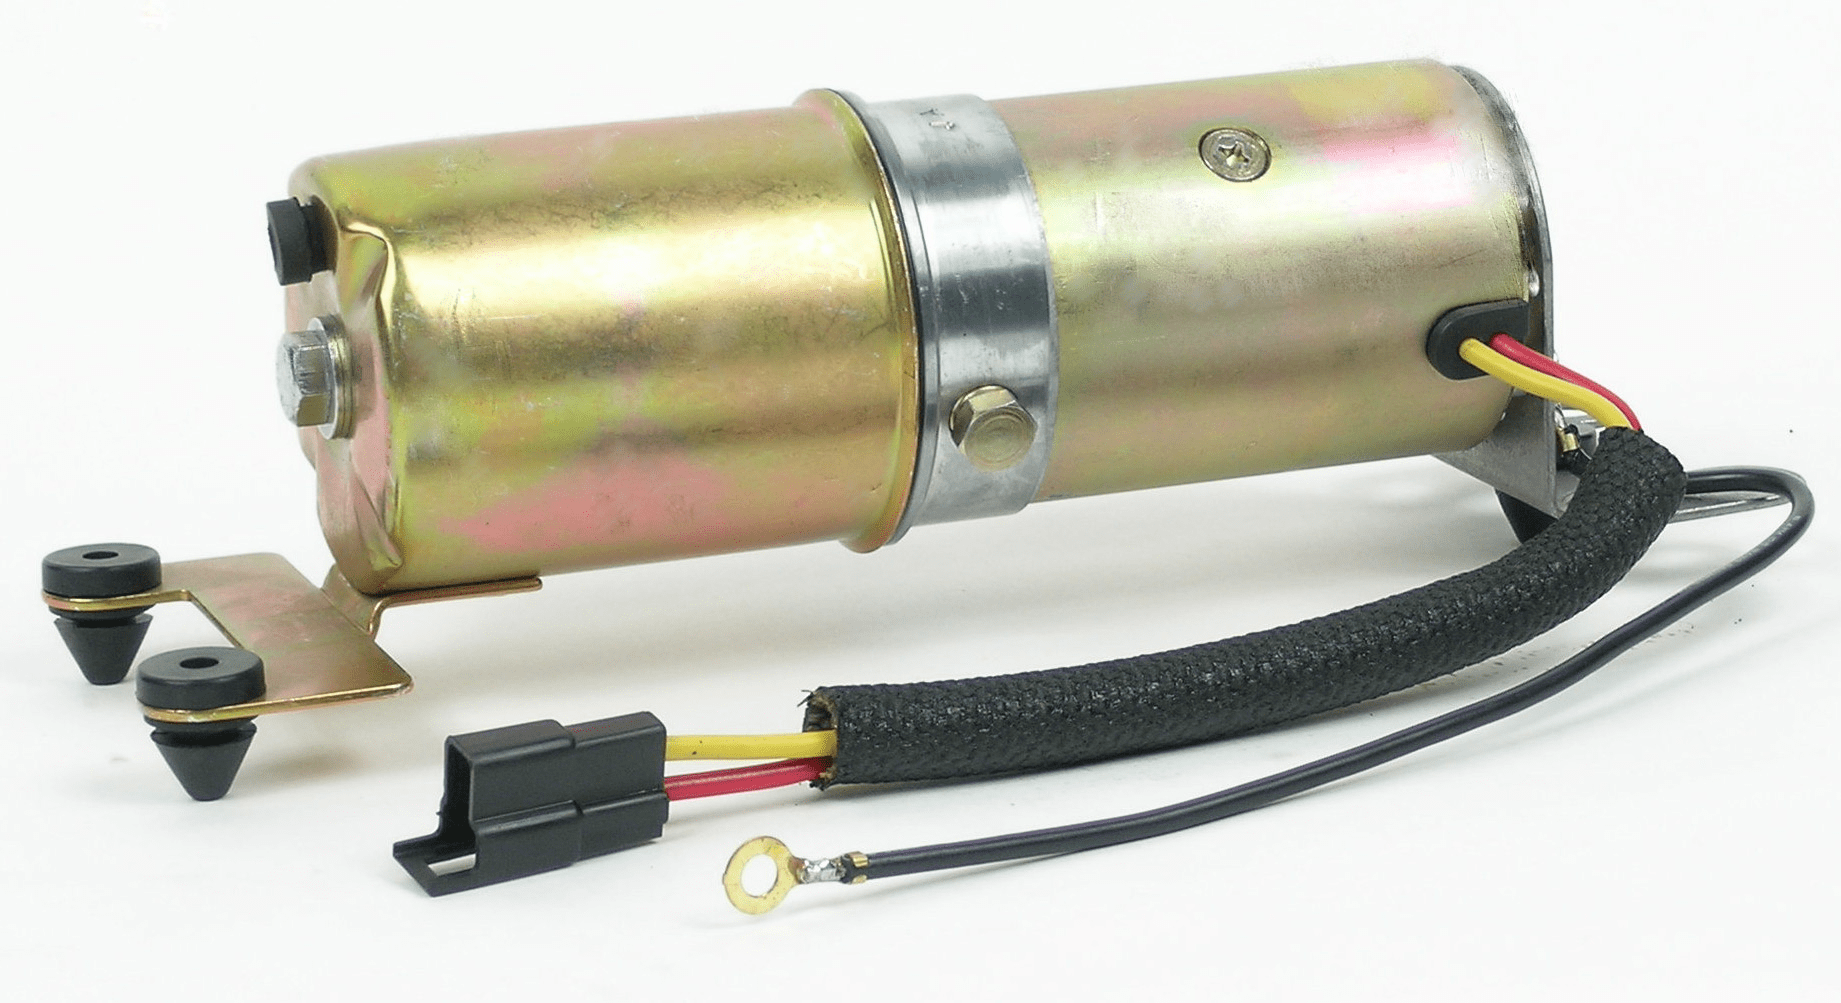 1962 Chevrolet Impala Convertible Top Pump Motor